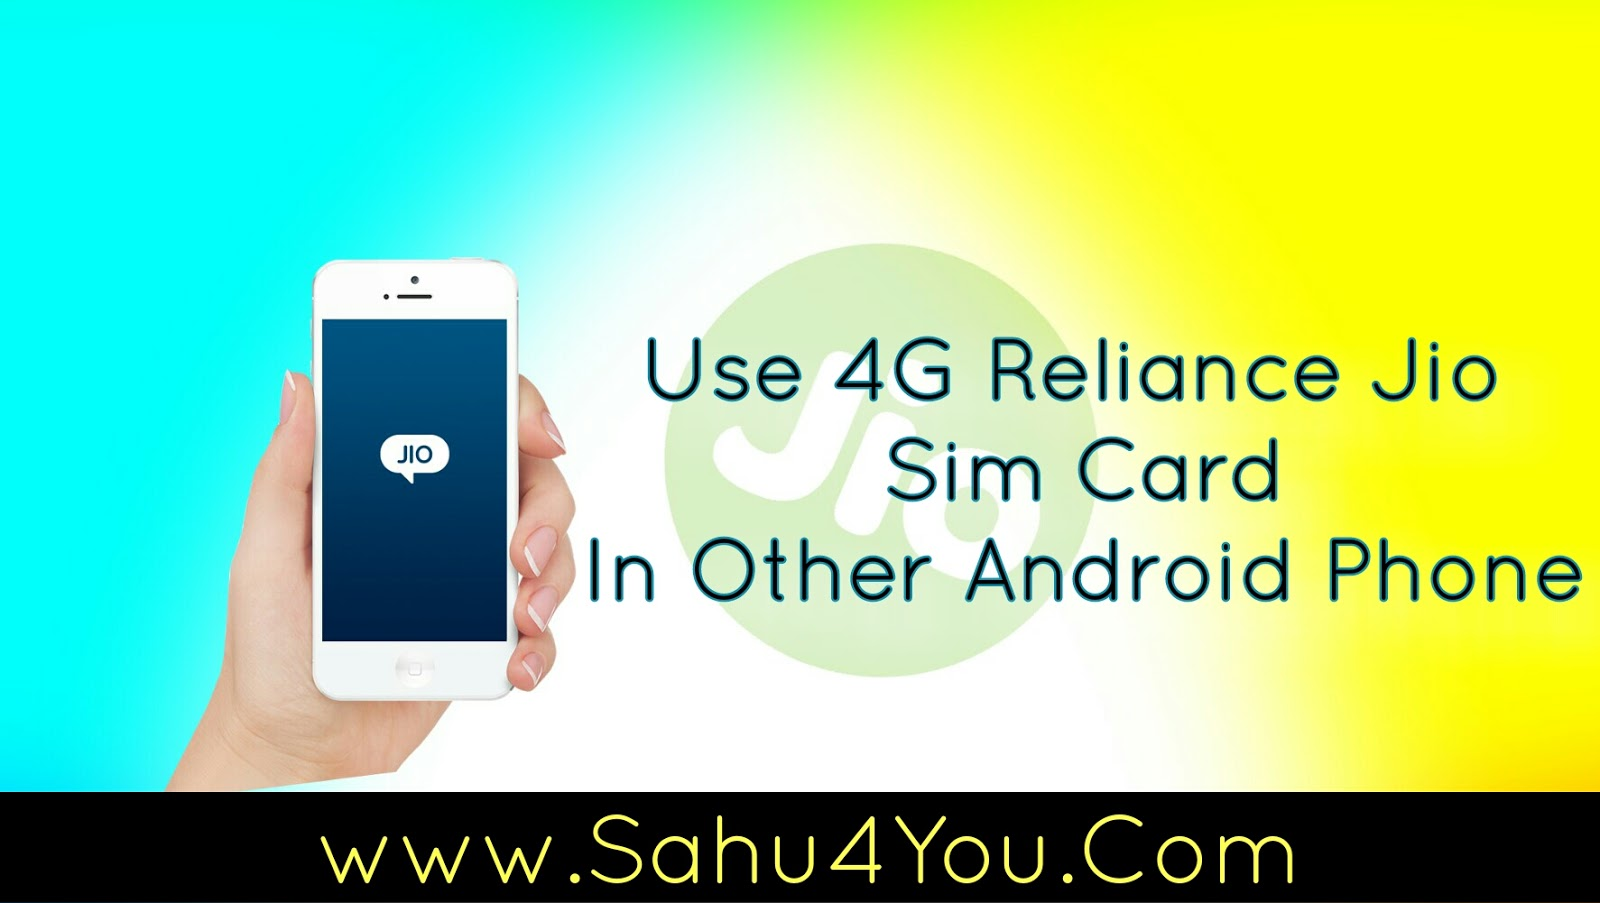 How To Use 4G Reliance Jio Sim Card In Other Android Phone